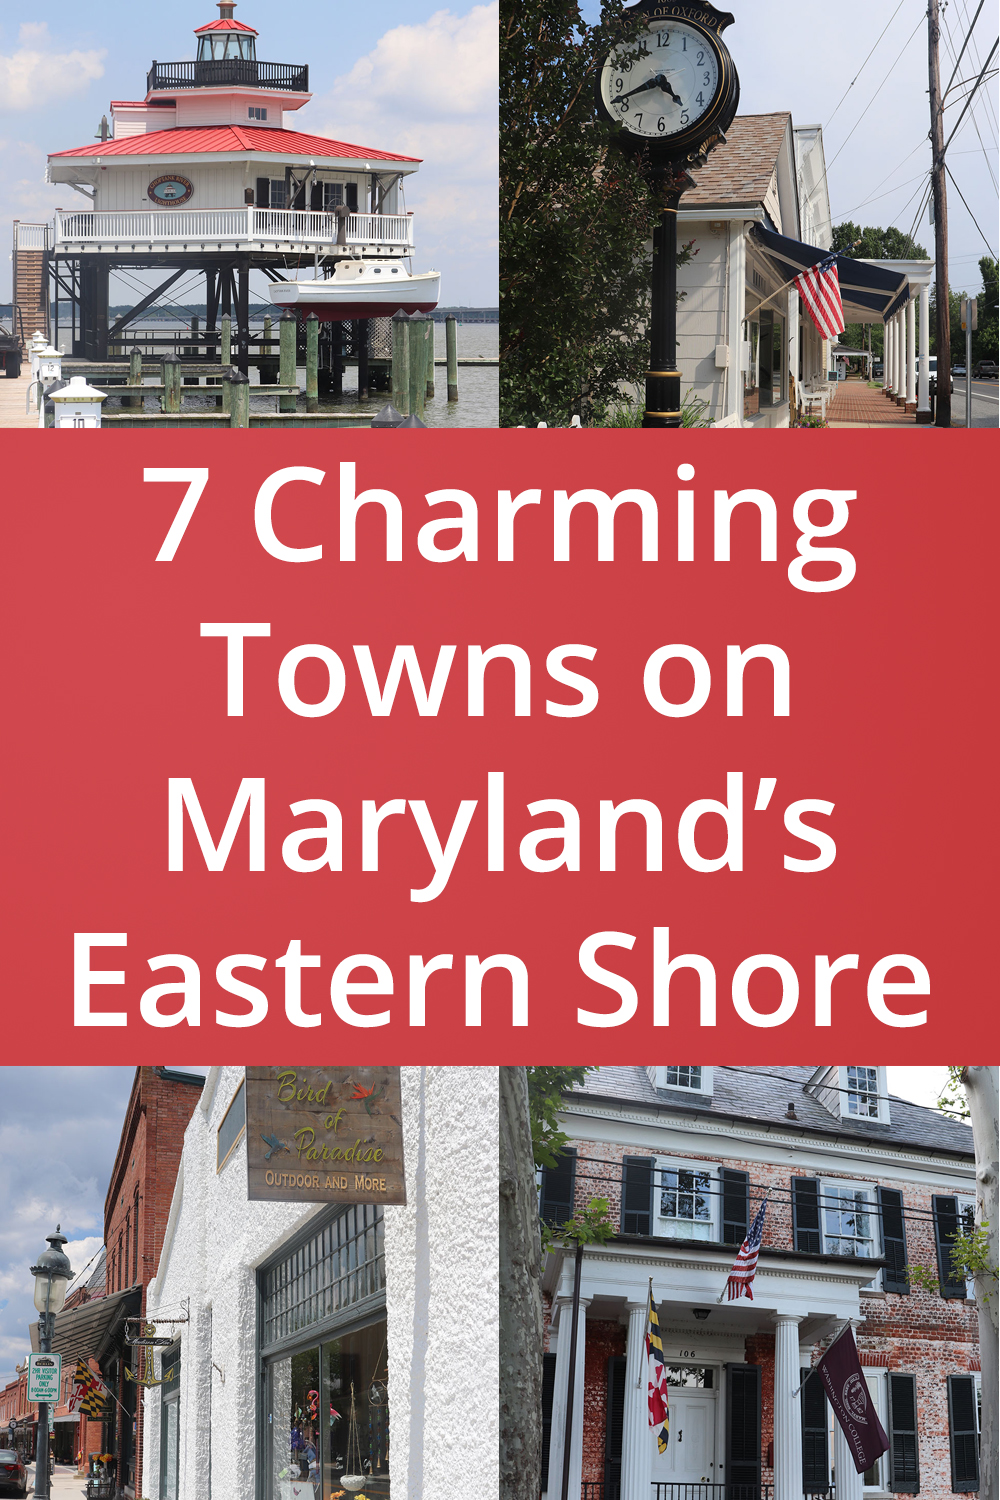 7 Charming Towns on Maryland's Eastern Shore